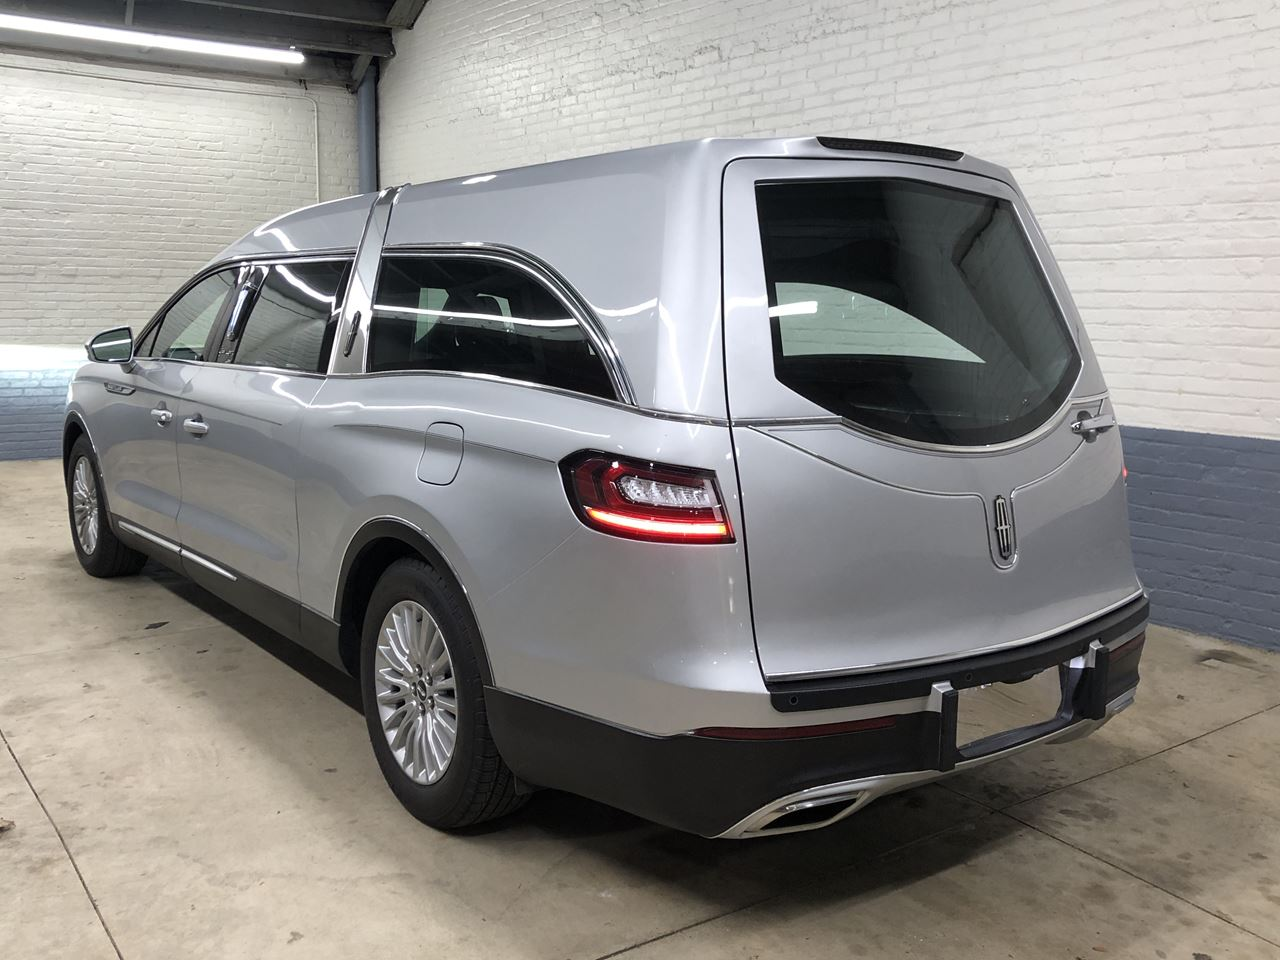 2019 Lincoln Nautilus MK Grand Legacy Limited 322 5